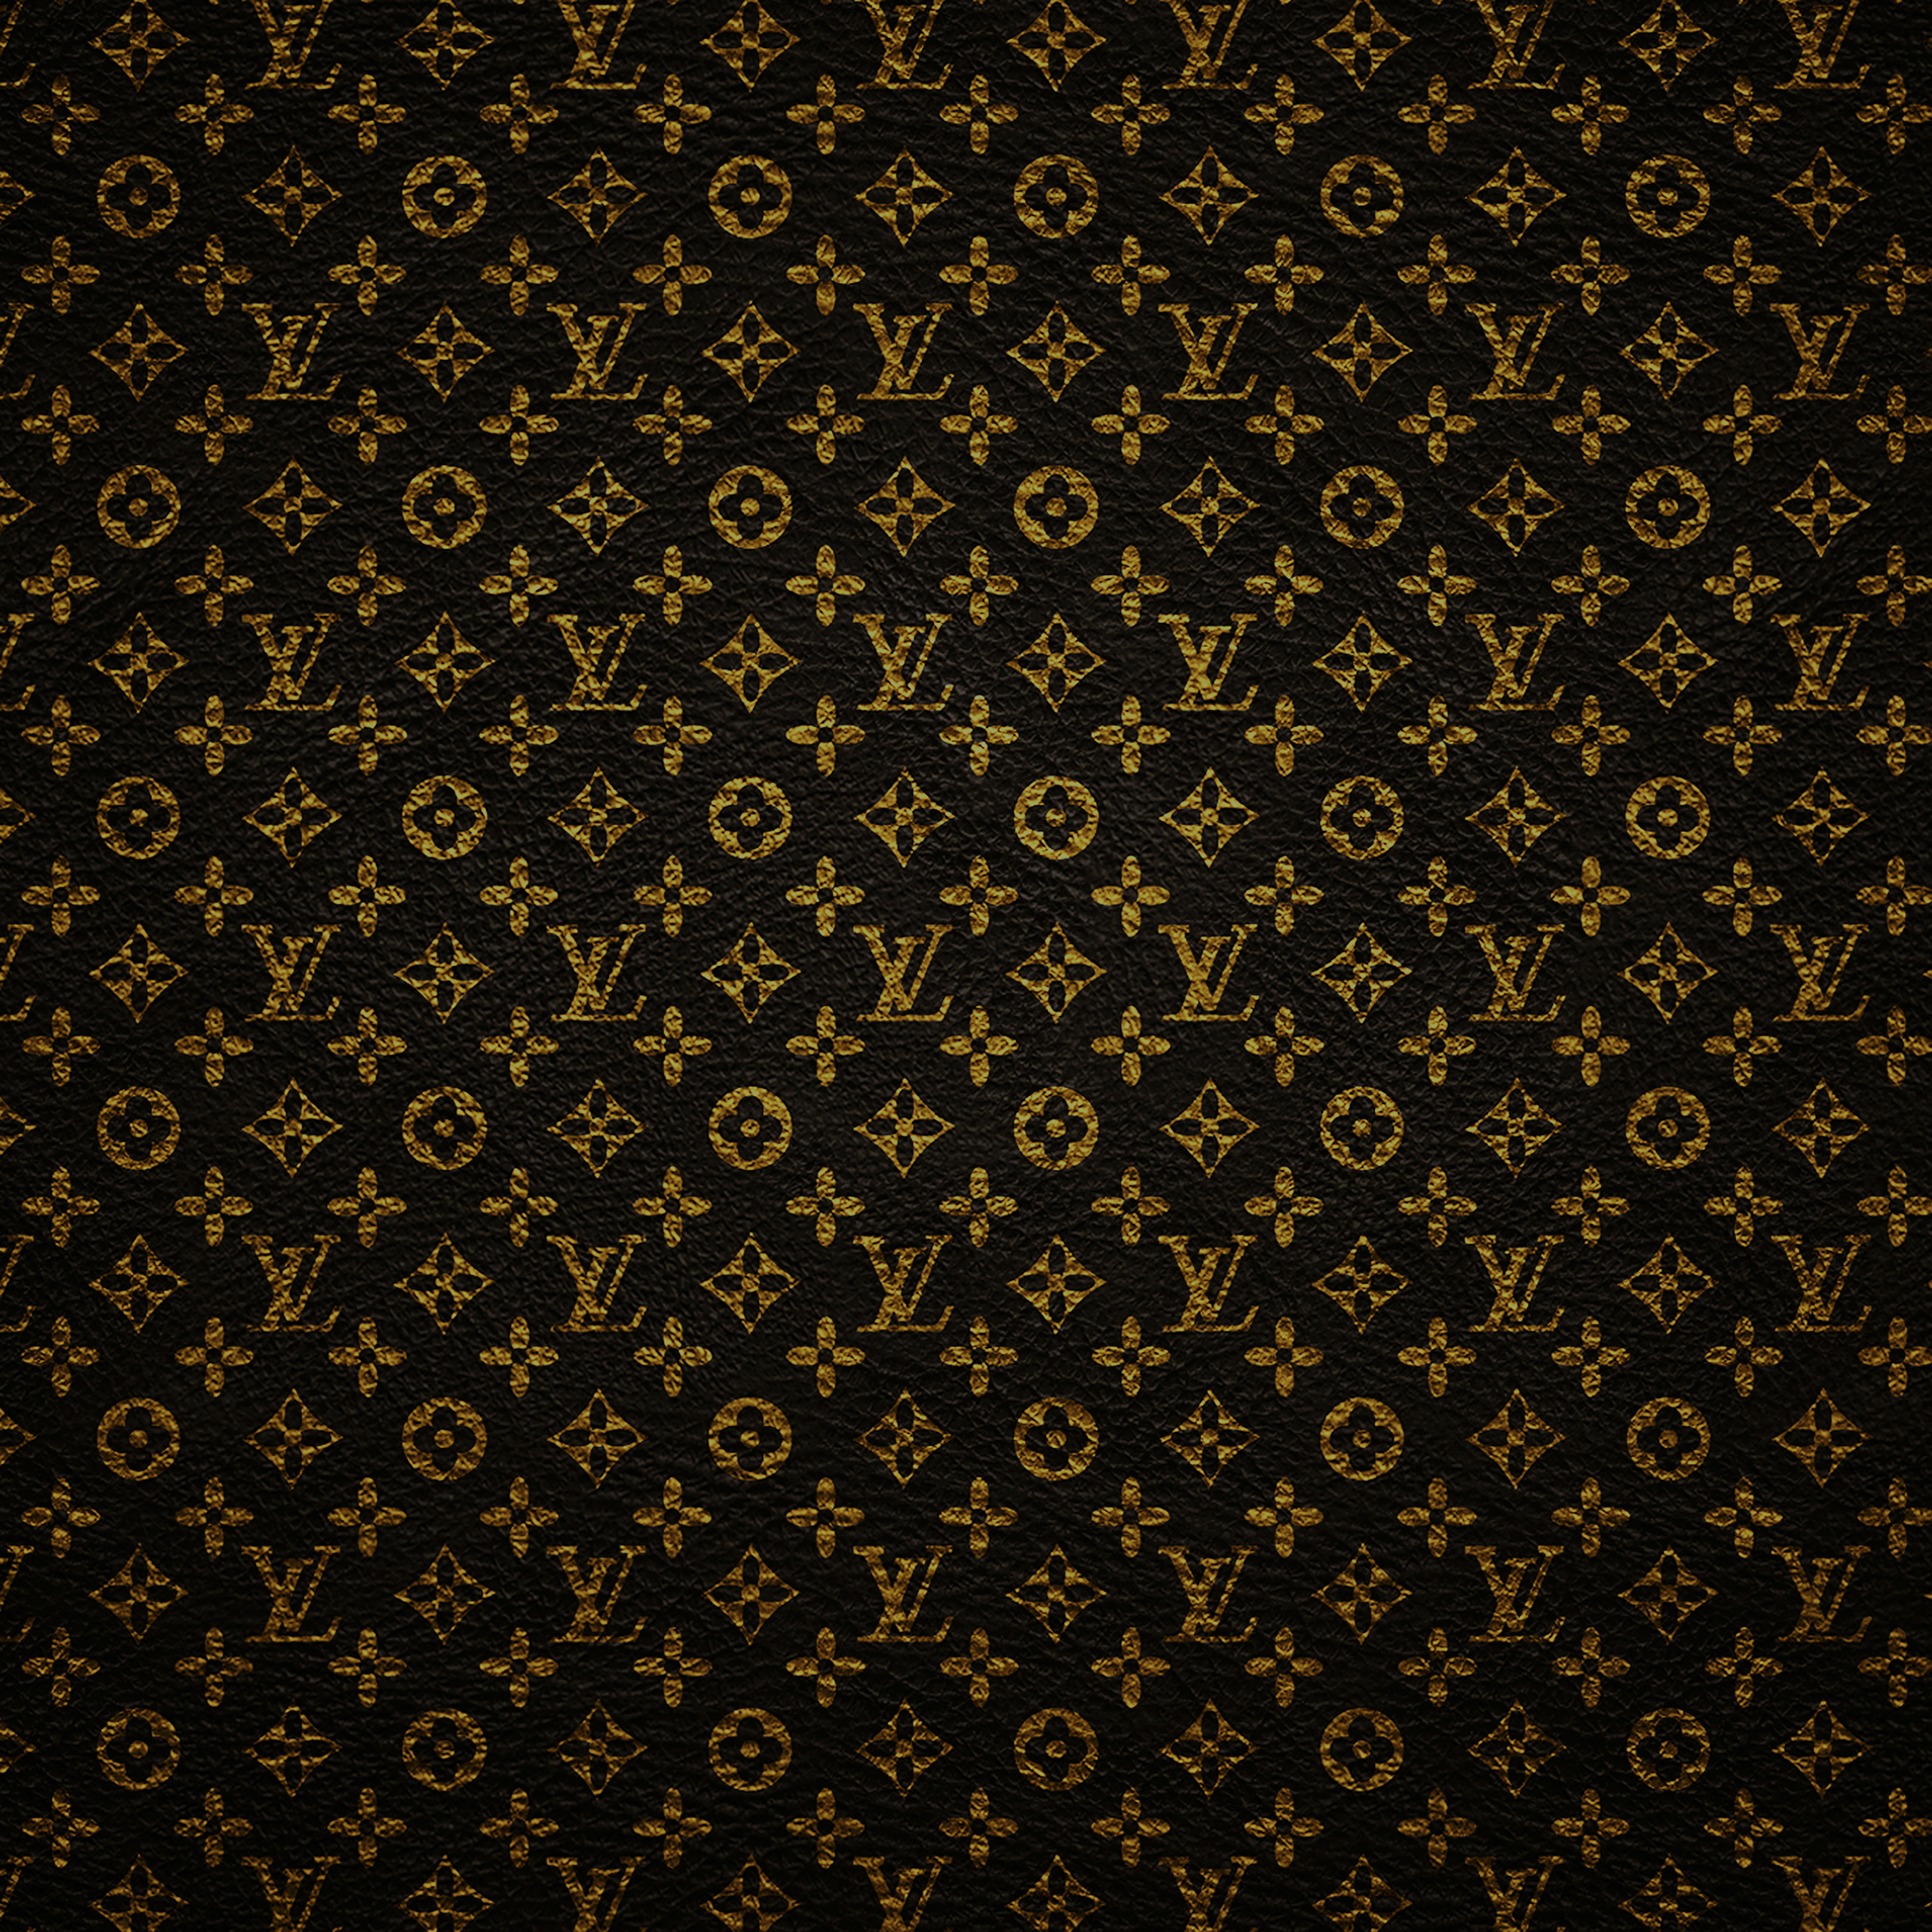 vf22-louis-vuitton-dark-pattern-art - Papers.co